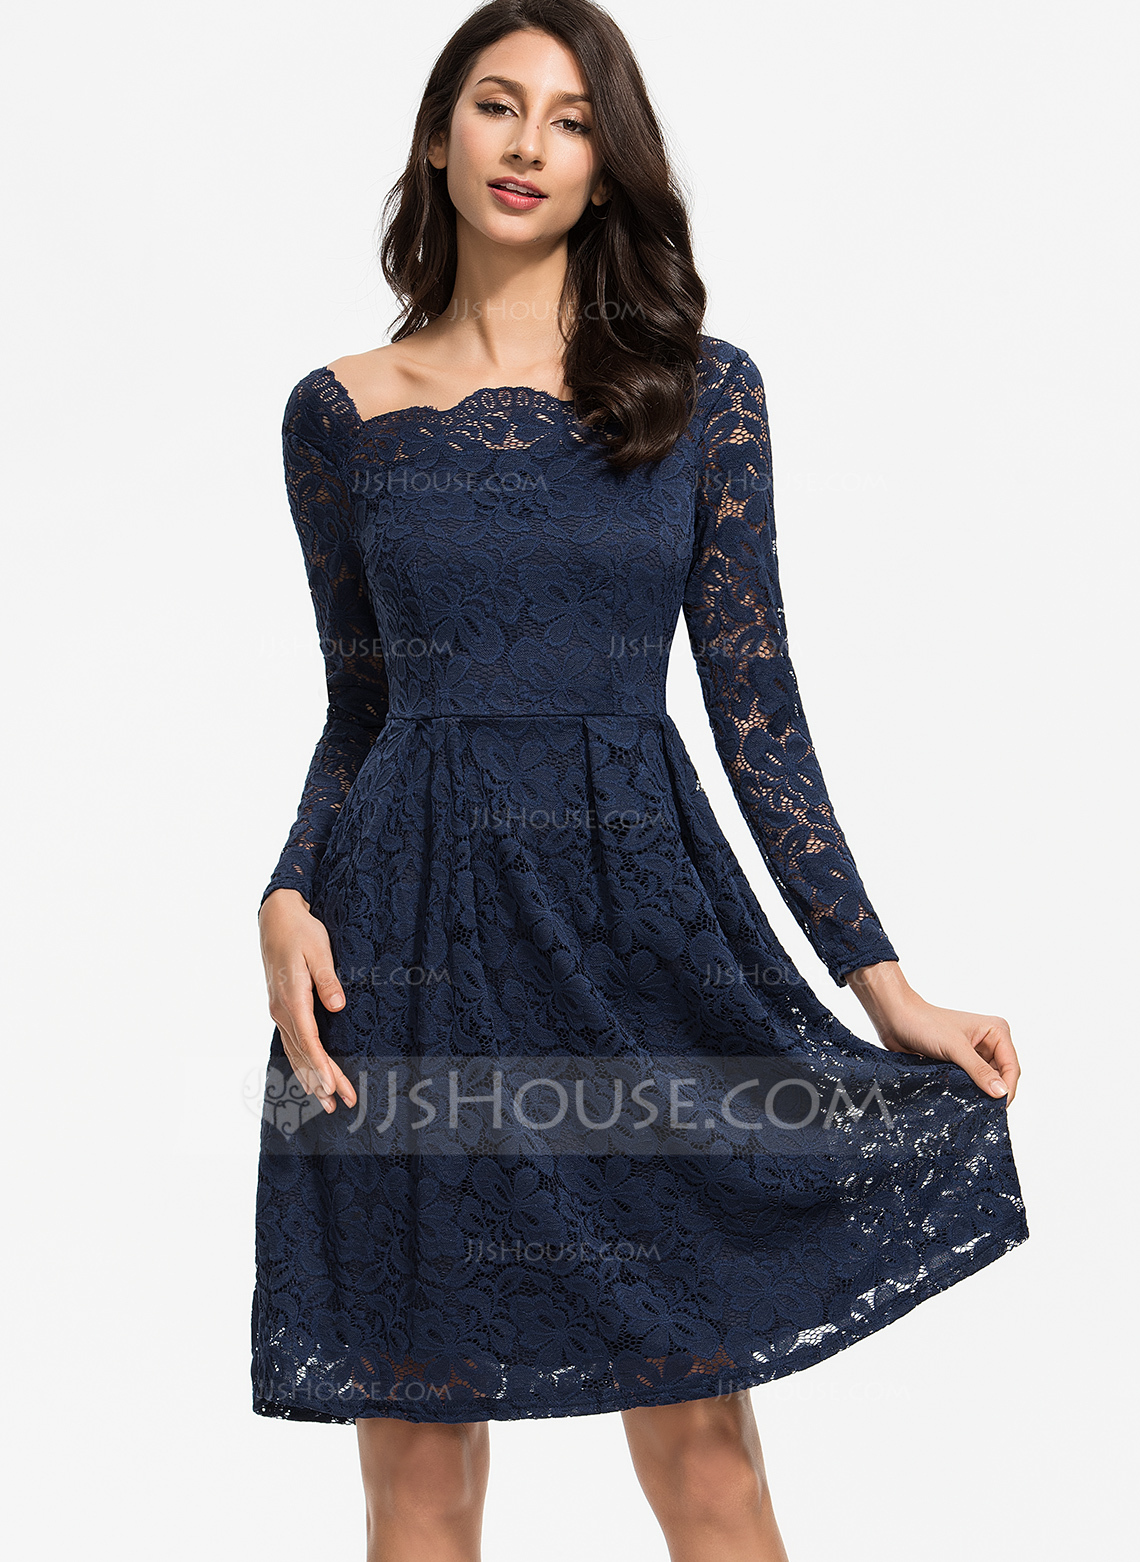 Polyester/Lace With Lace/Solid Knee Length Dress